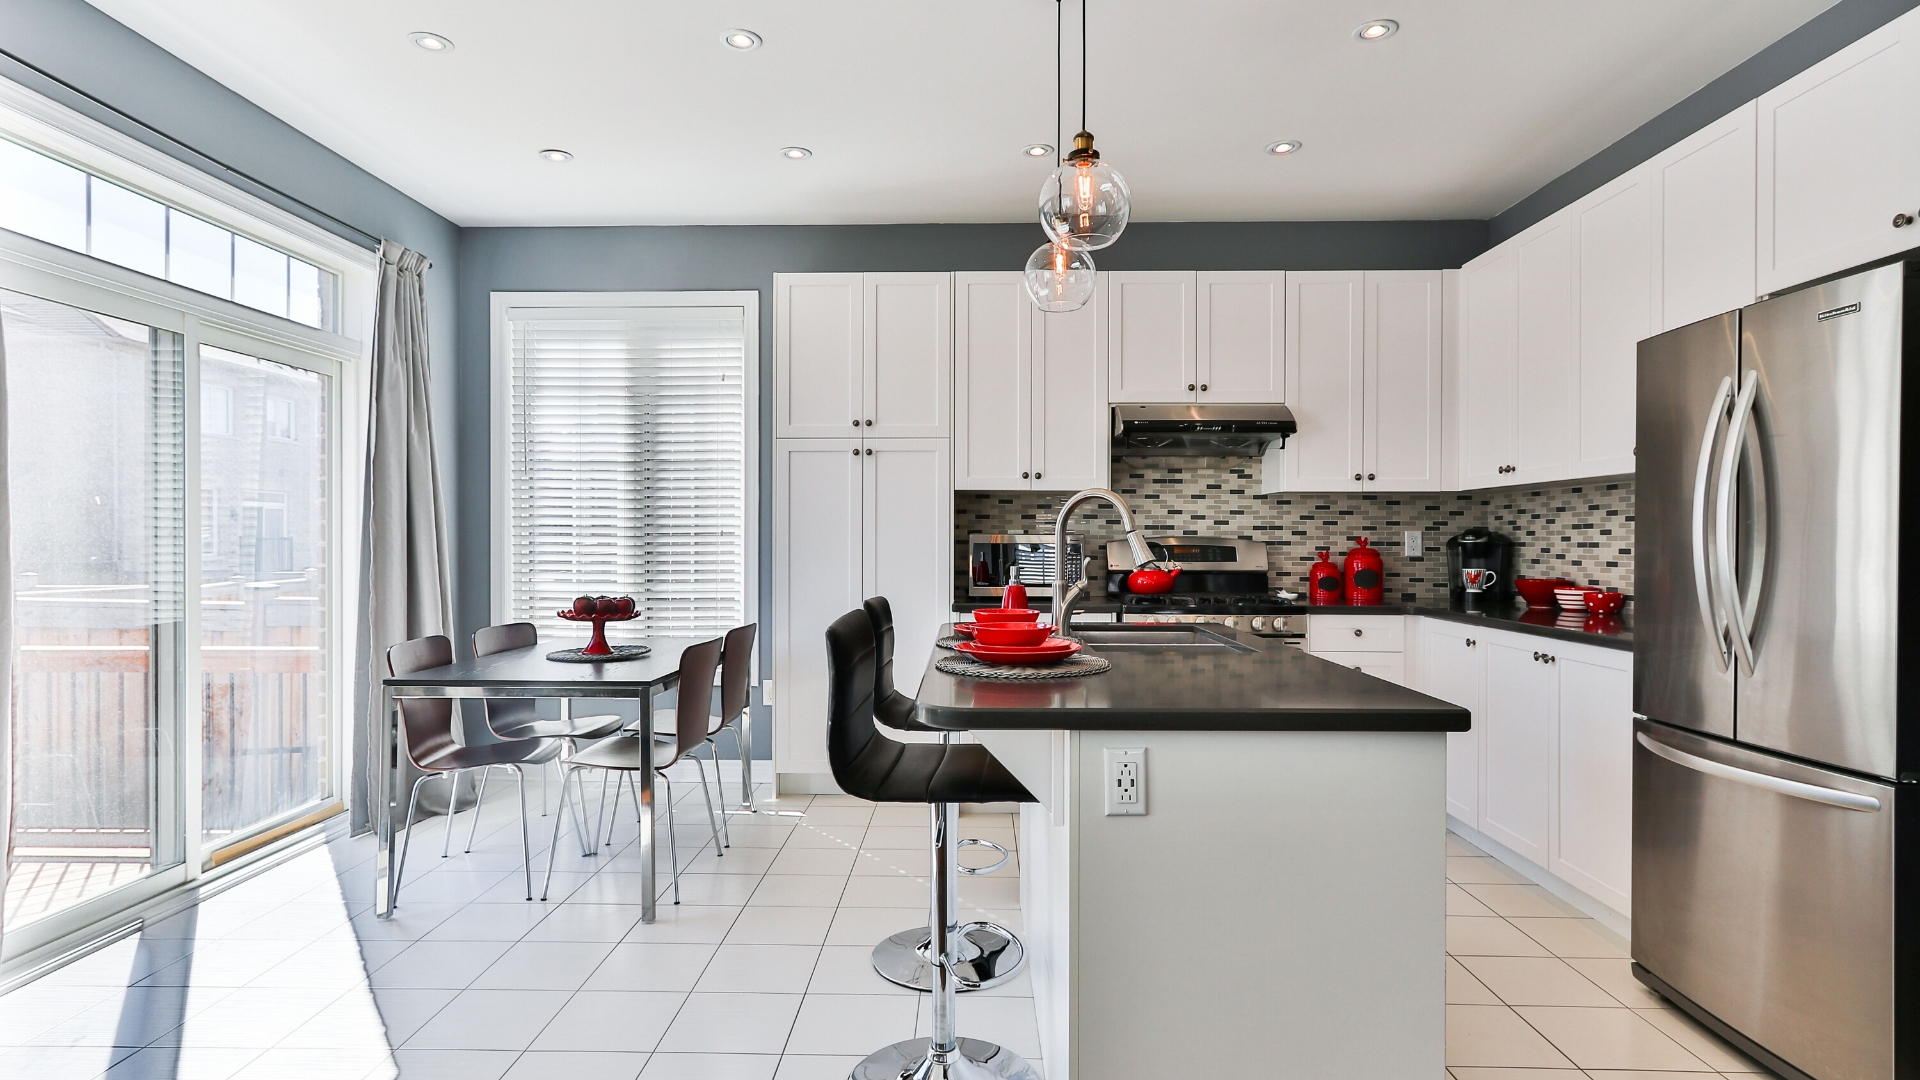 what homeowners say about the value in remodeling kitchens and baths